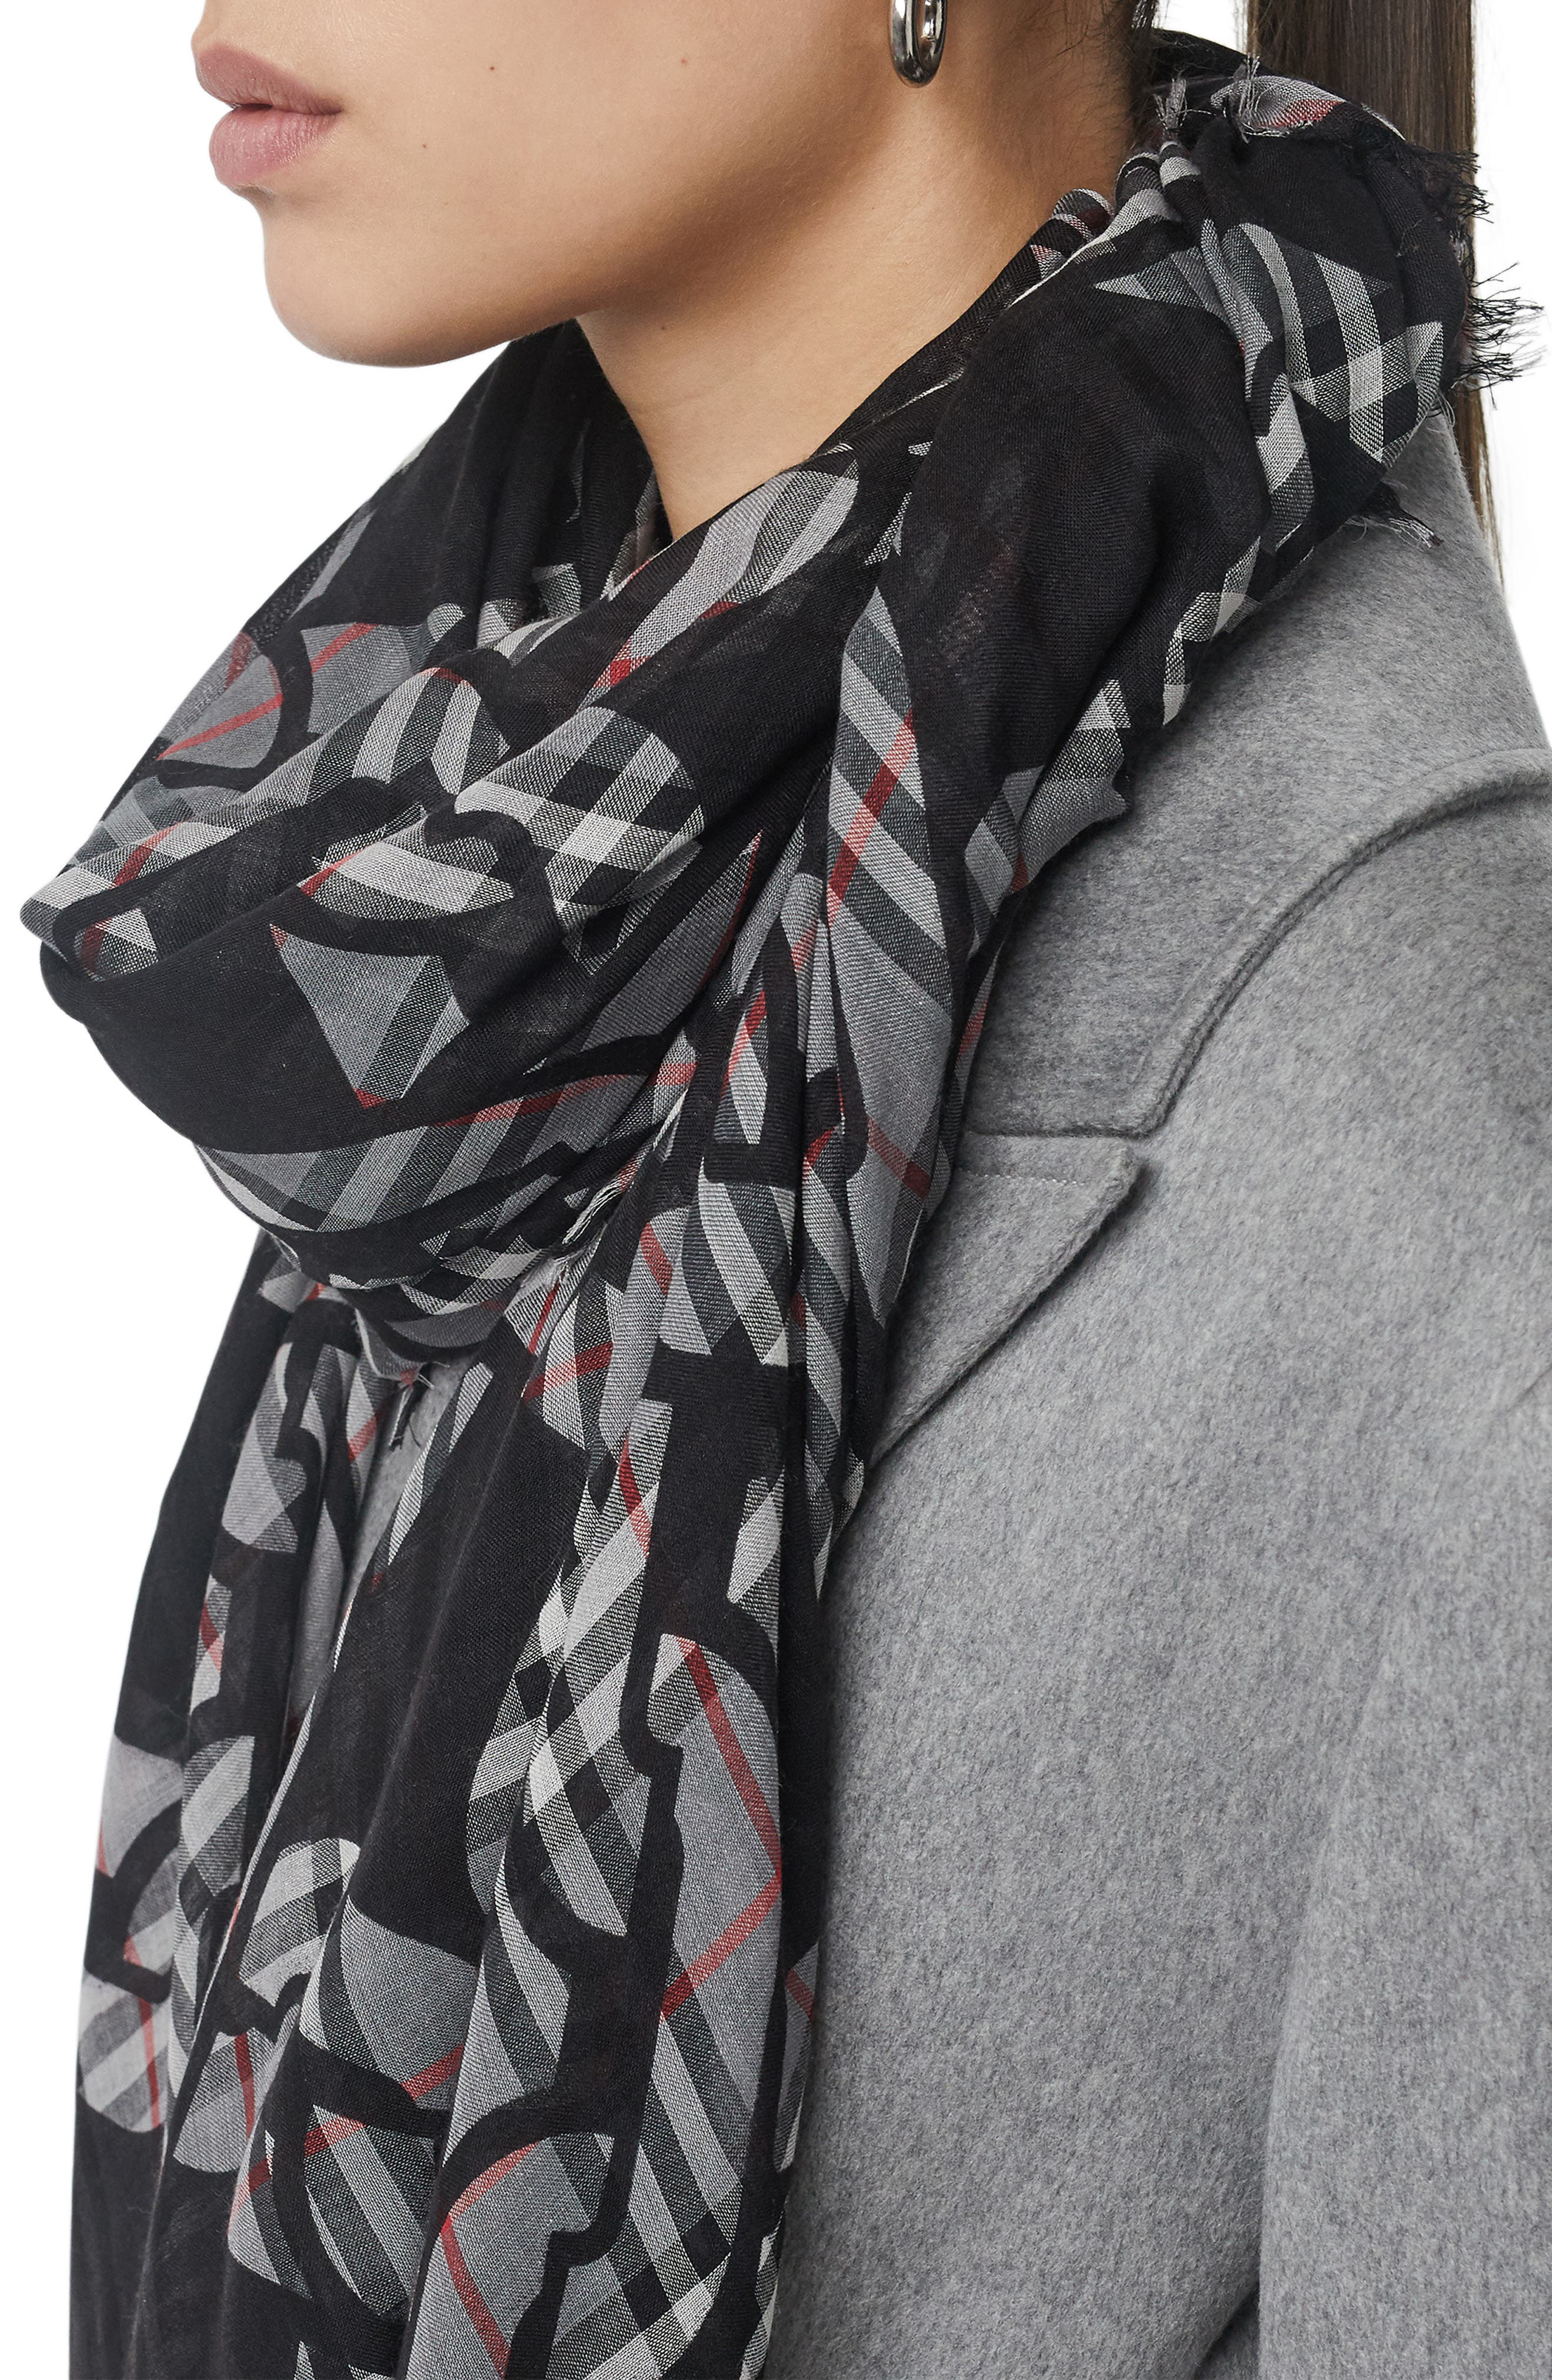 Chain Vintage Check Wool & Silk Scarf,                             Alternate thumbnail 4, color,                             CHARCOAL